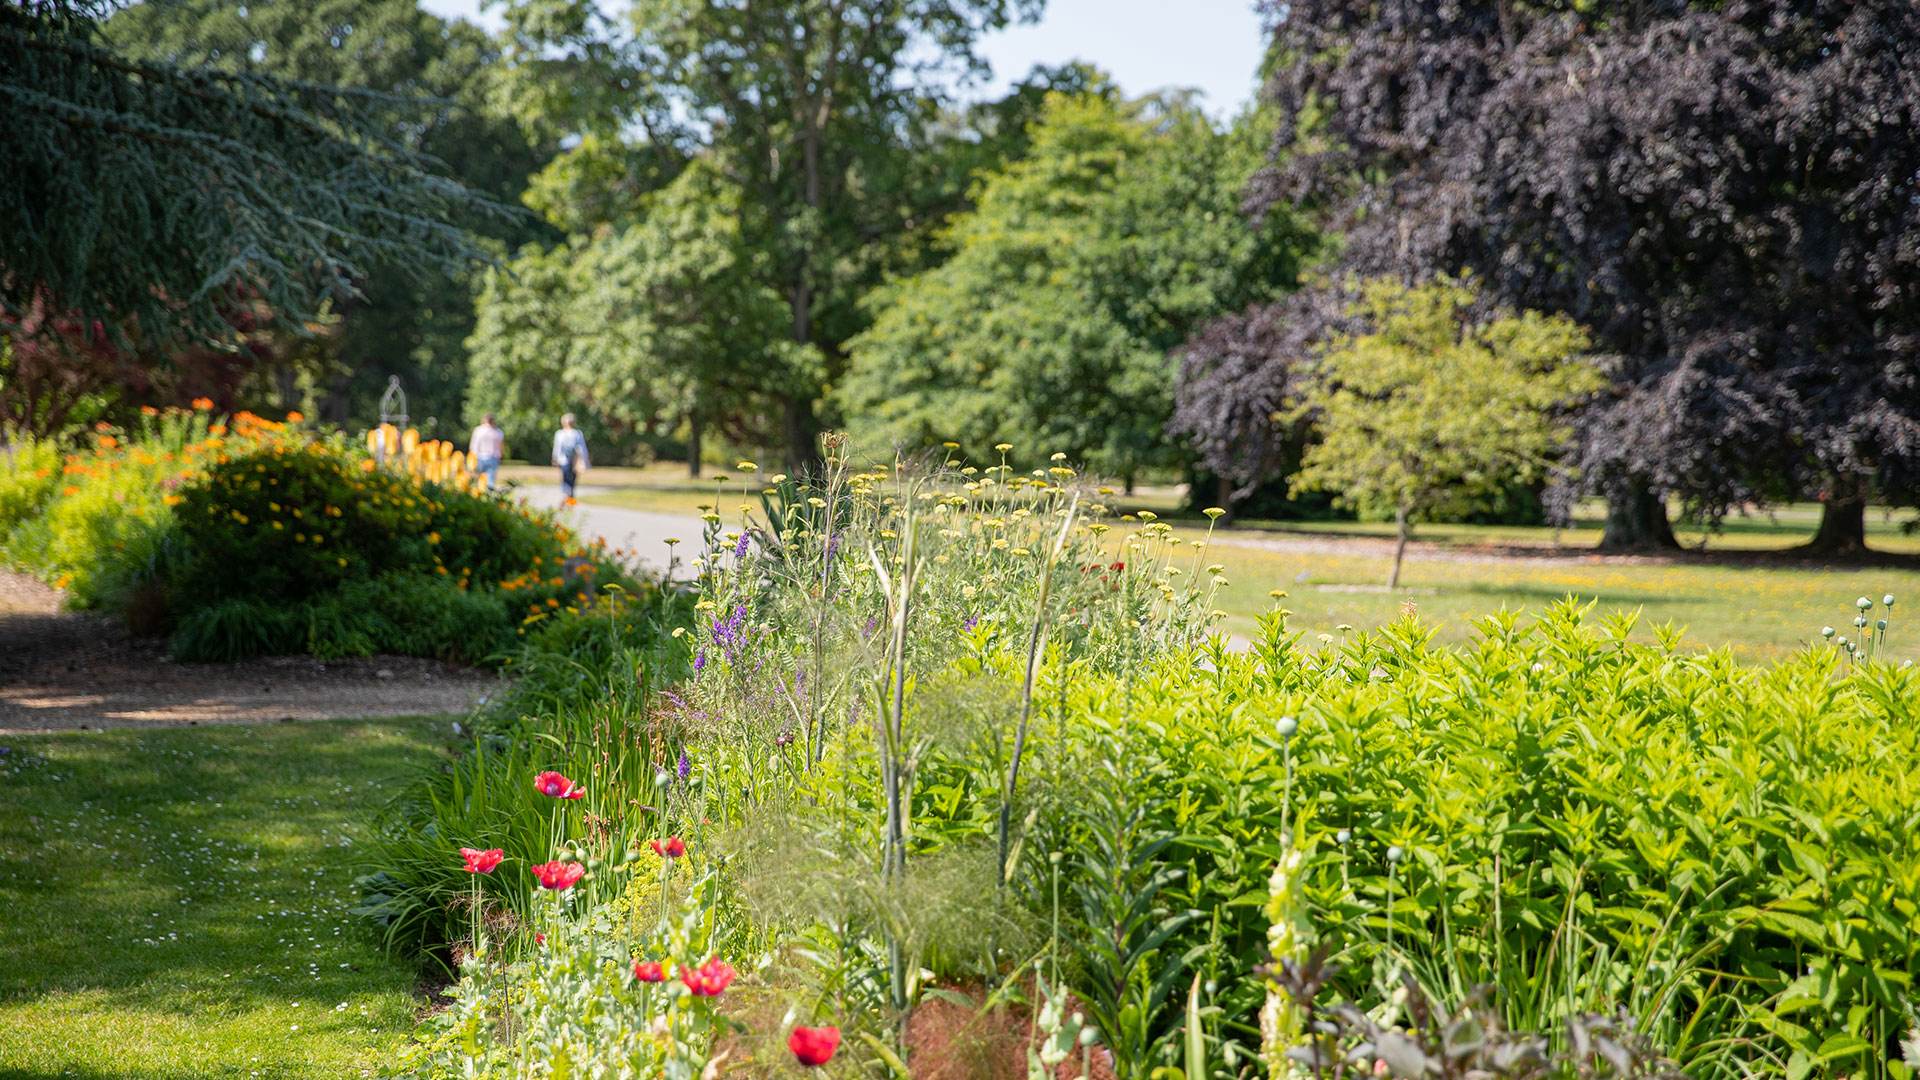 Herbaceous Garden | July, Summer | Exbury Gardens | New Forest, Hampshire